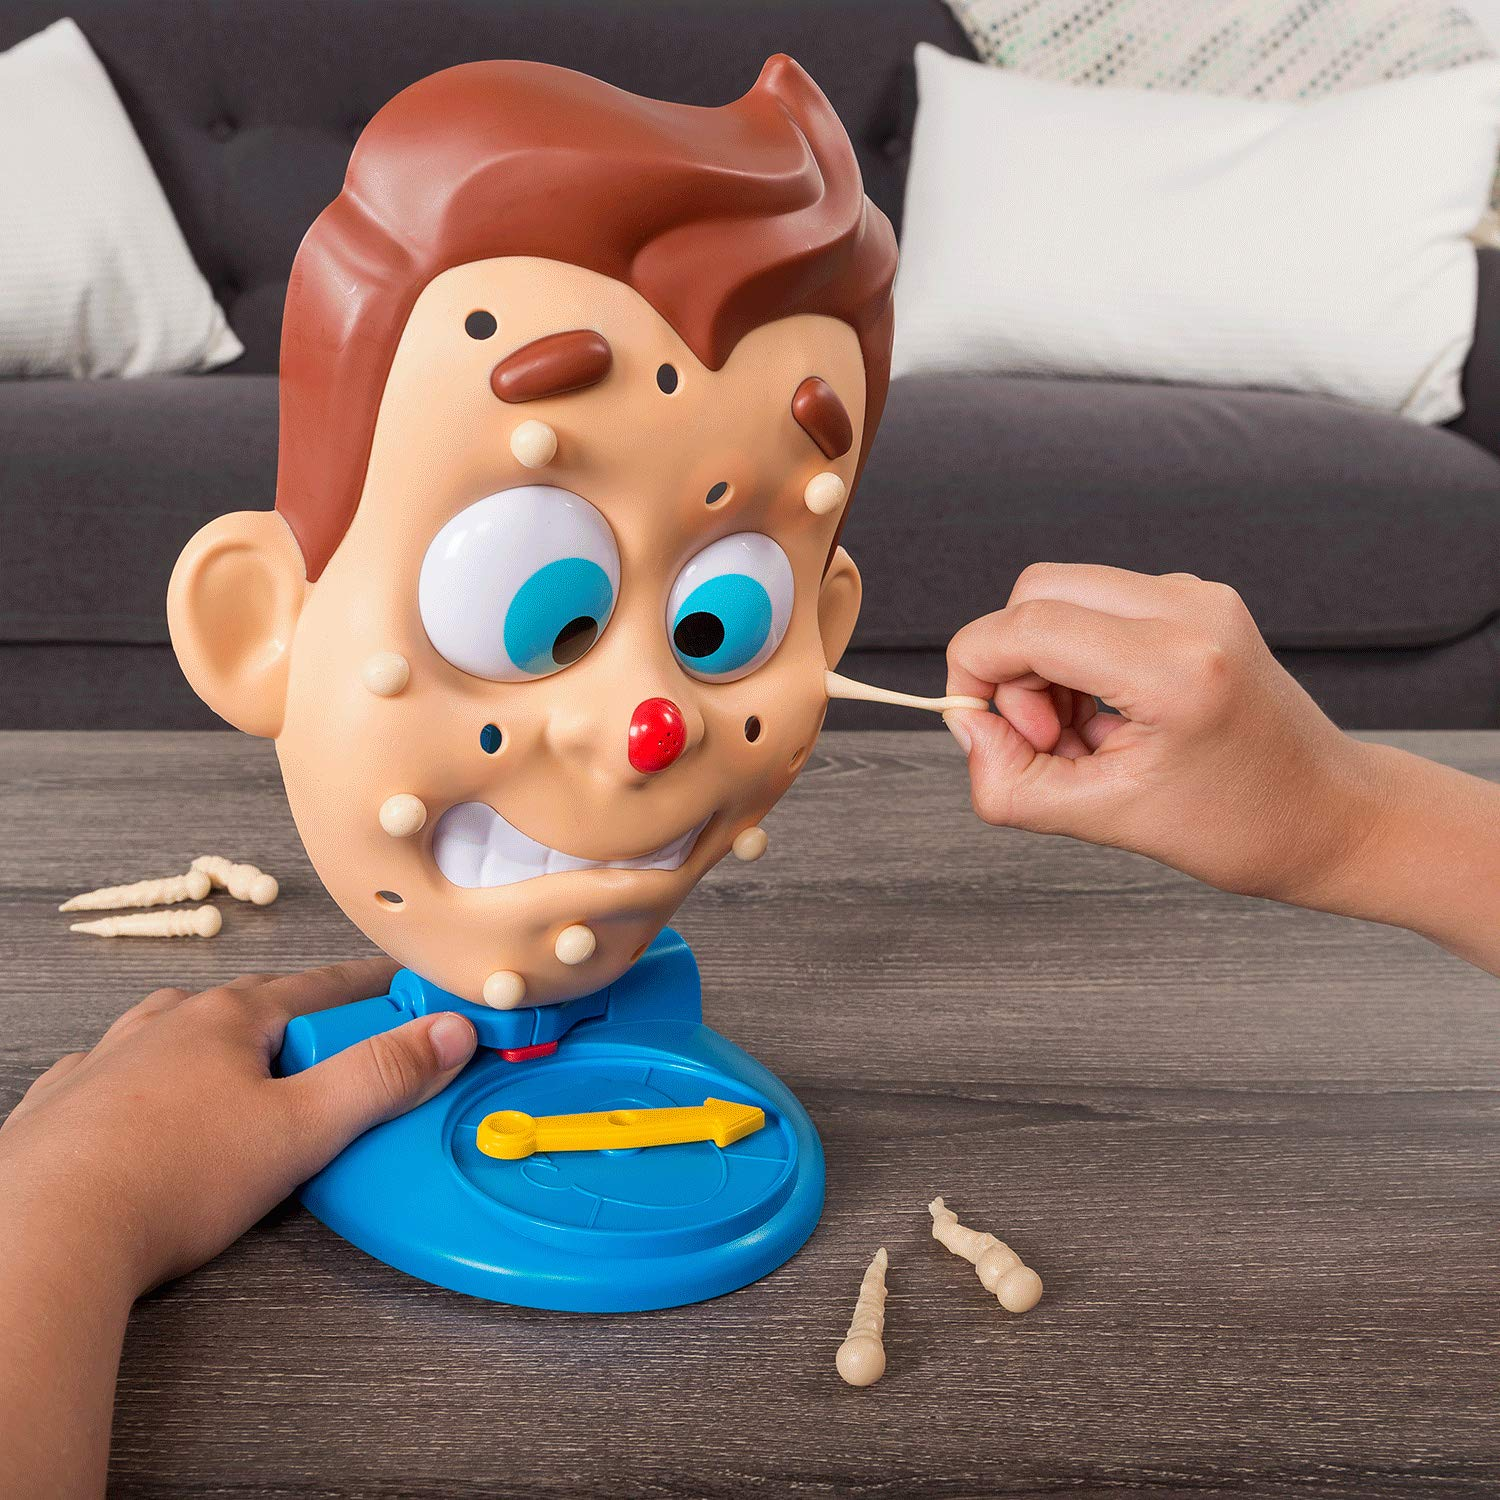 Pimple Pete Game Presented by Dr  Pimple Popper, Explosive Family Game for  Kids Age 5 and Up